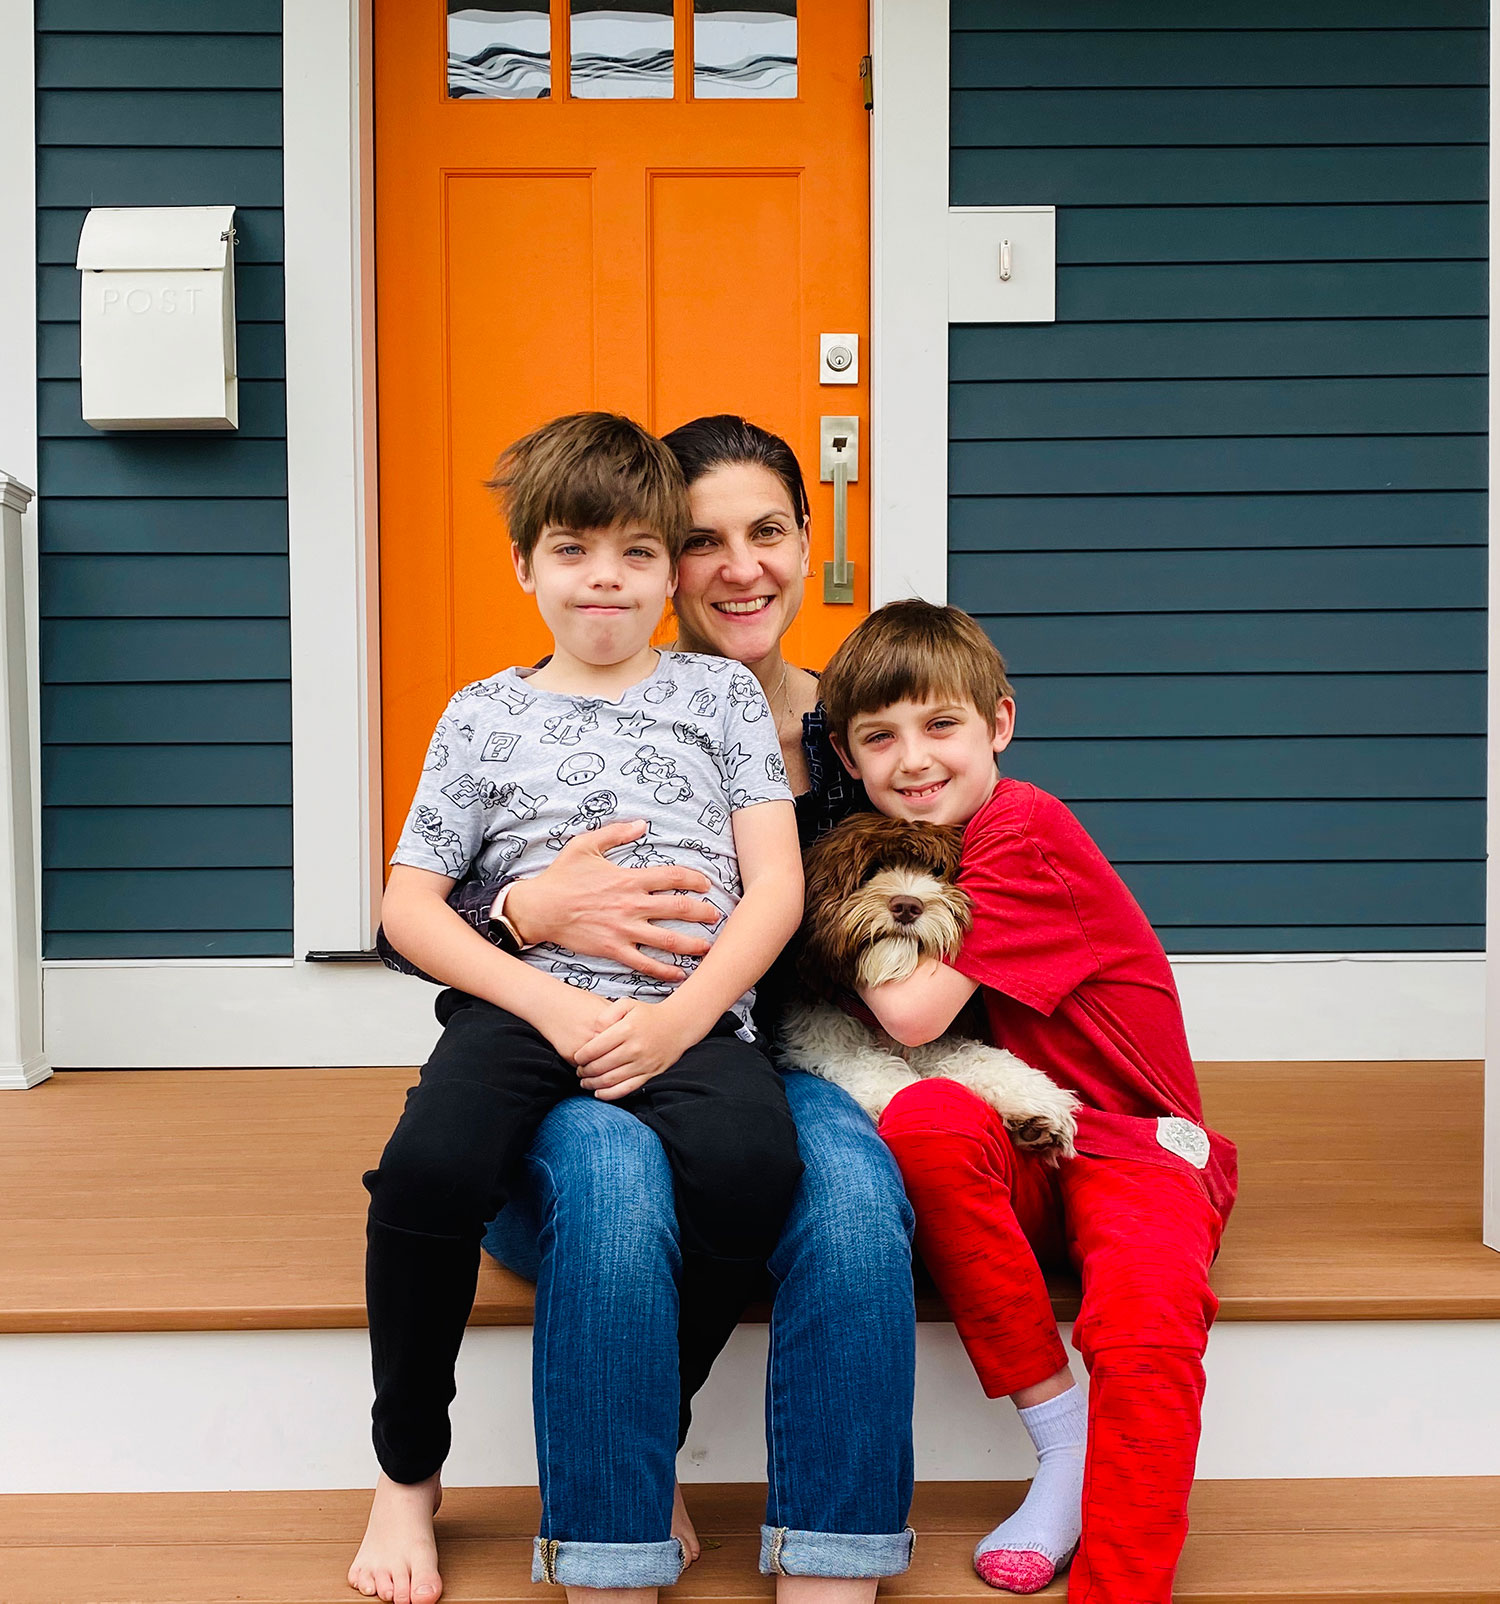 Jennie Weiner, associate professor of educational leadership in the Neag School, at home with her 8-year-old twins Manny and Rufus and their dog Junior.